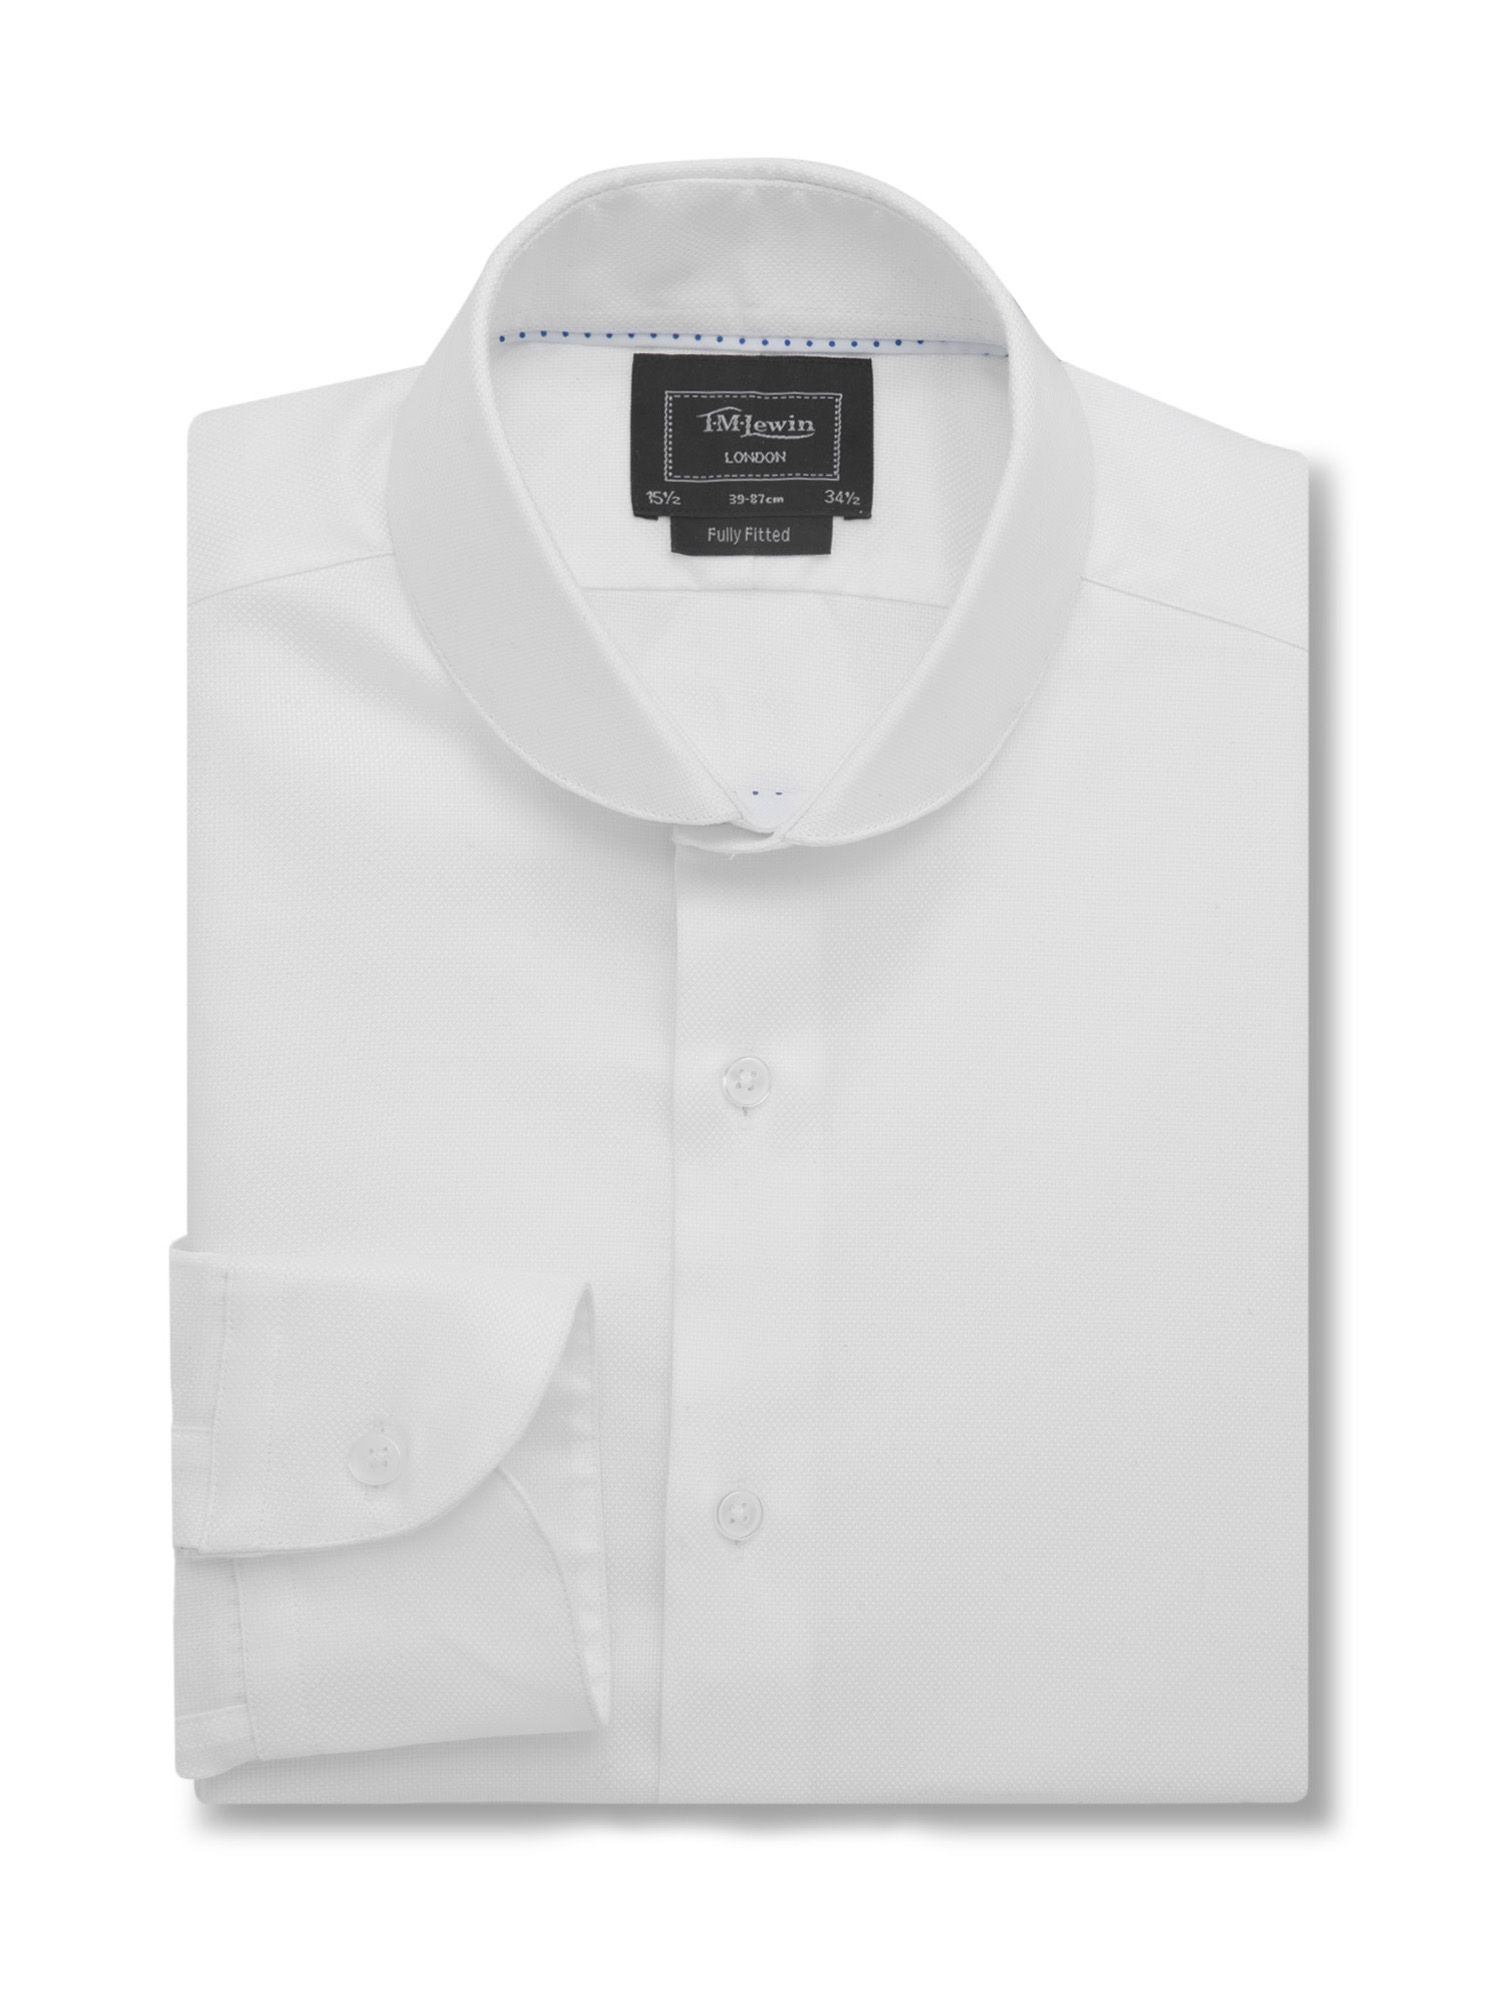 Tm lewin fully fitted oxford round cutaway collar shirt in for White cutaway collar shirt